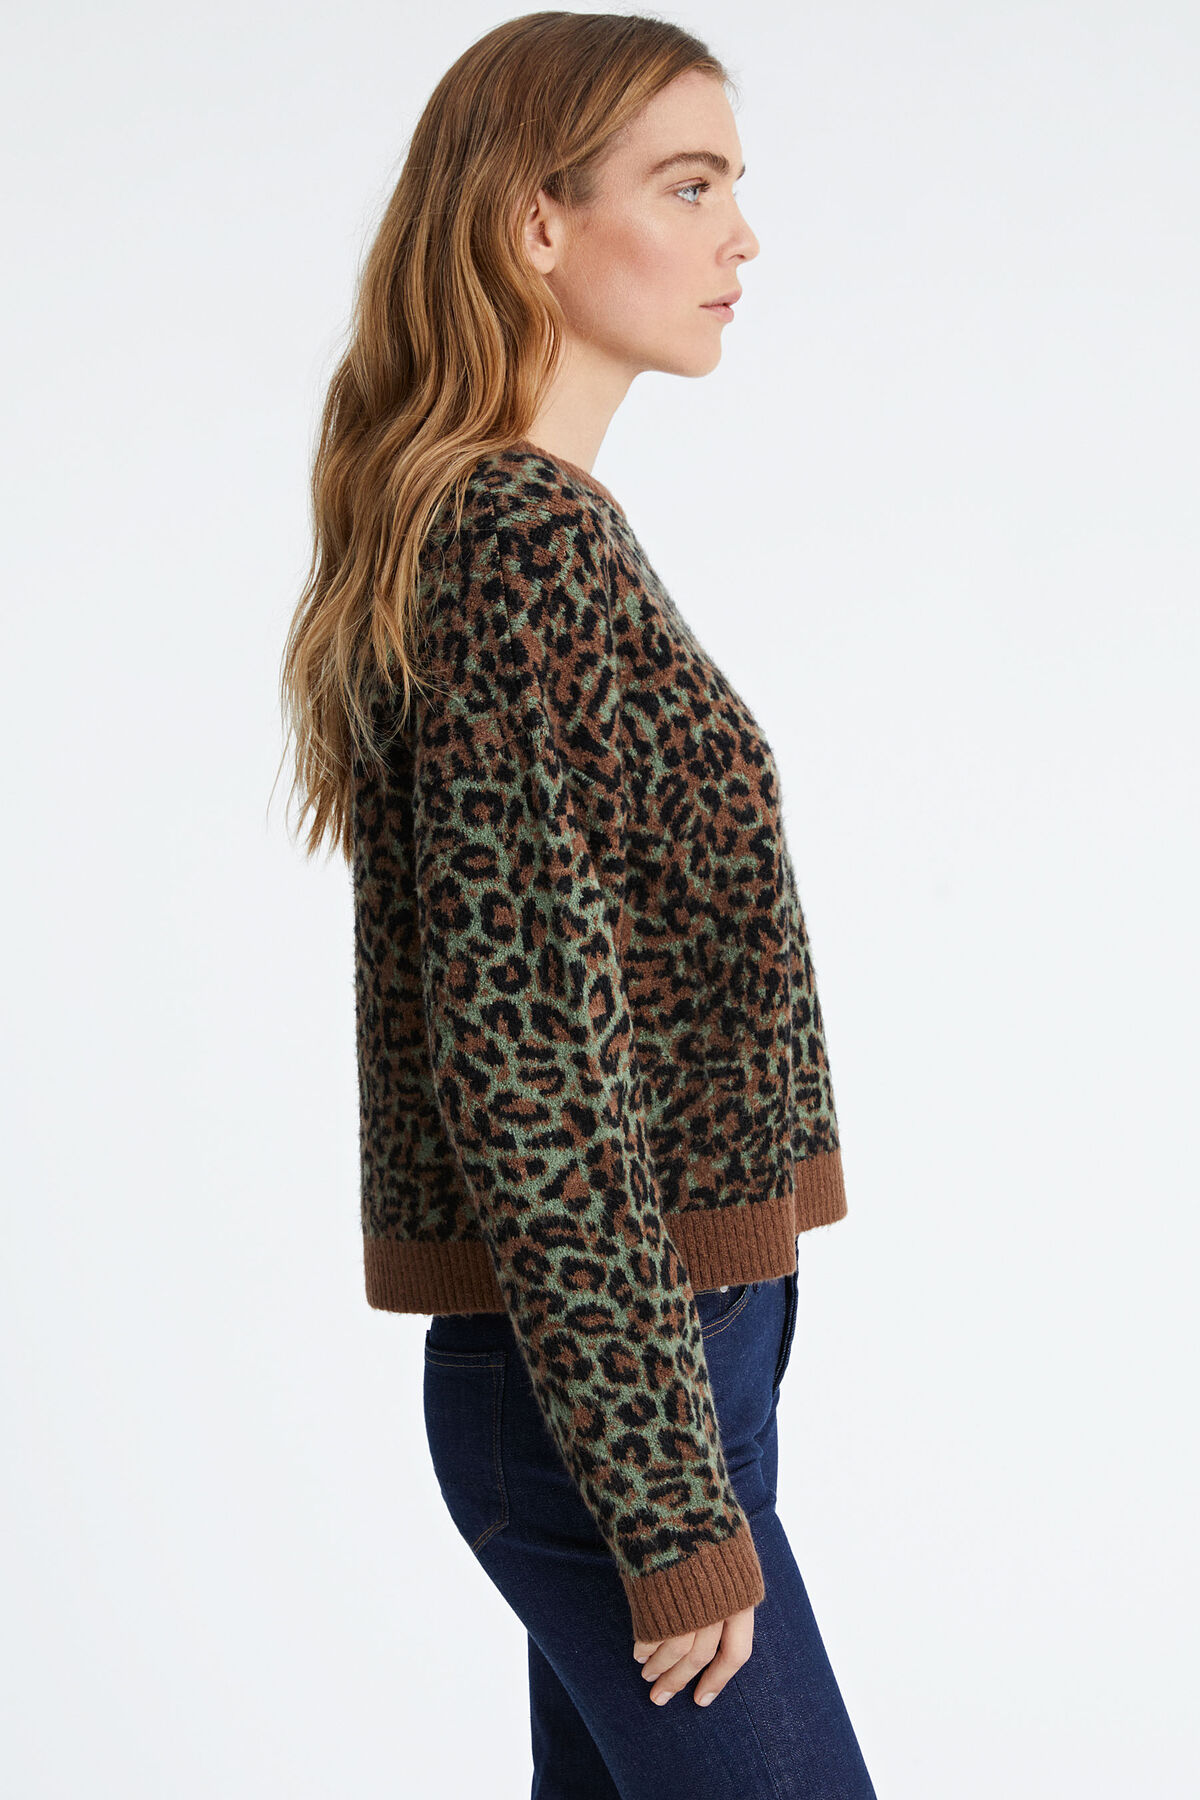 GRESHAM JUMPER Seasonal leopard jacquard - Boxy Fit